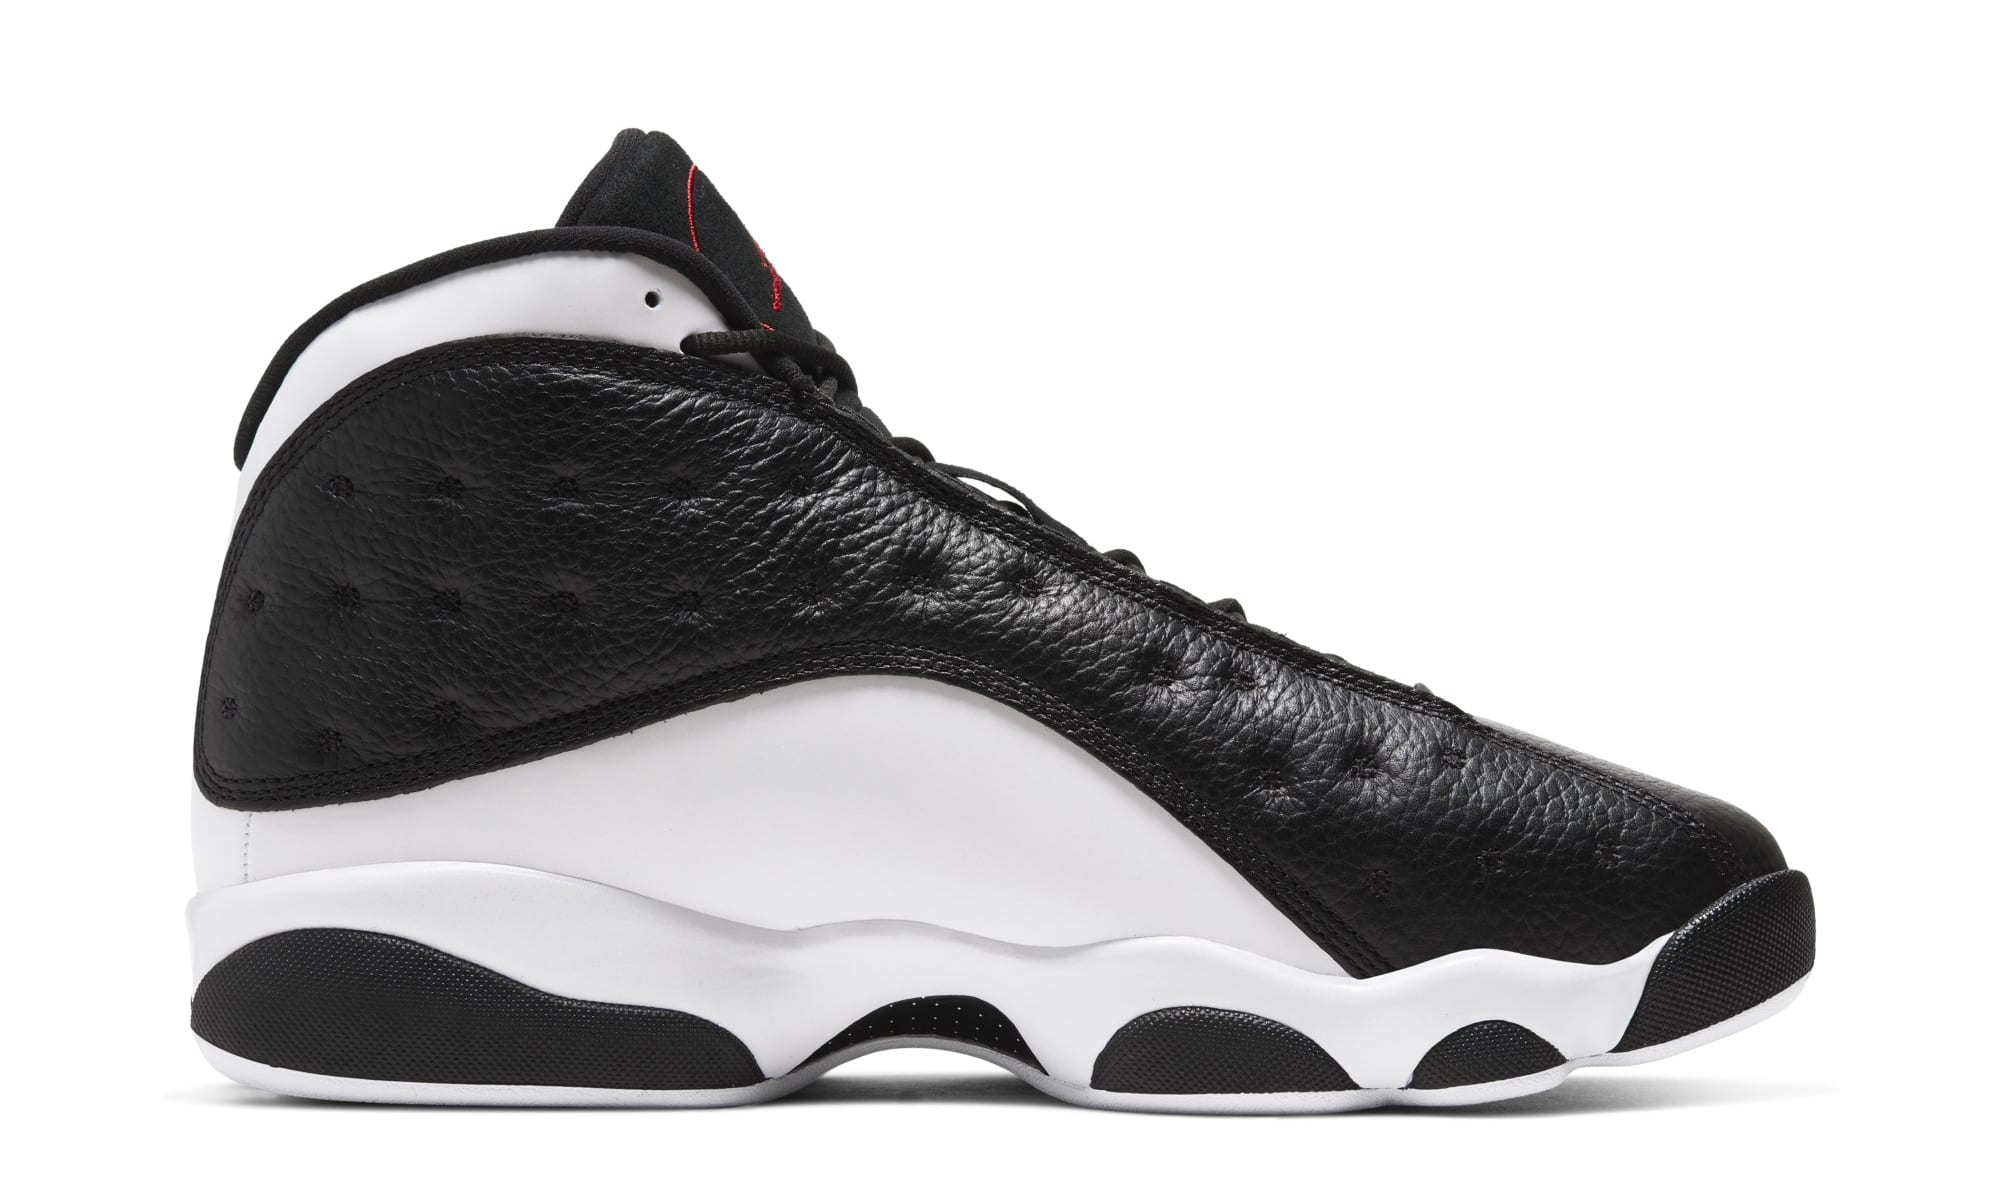 Air Jordan 13 'Reverse He Got Game' 414571-061 (Medial)